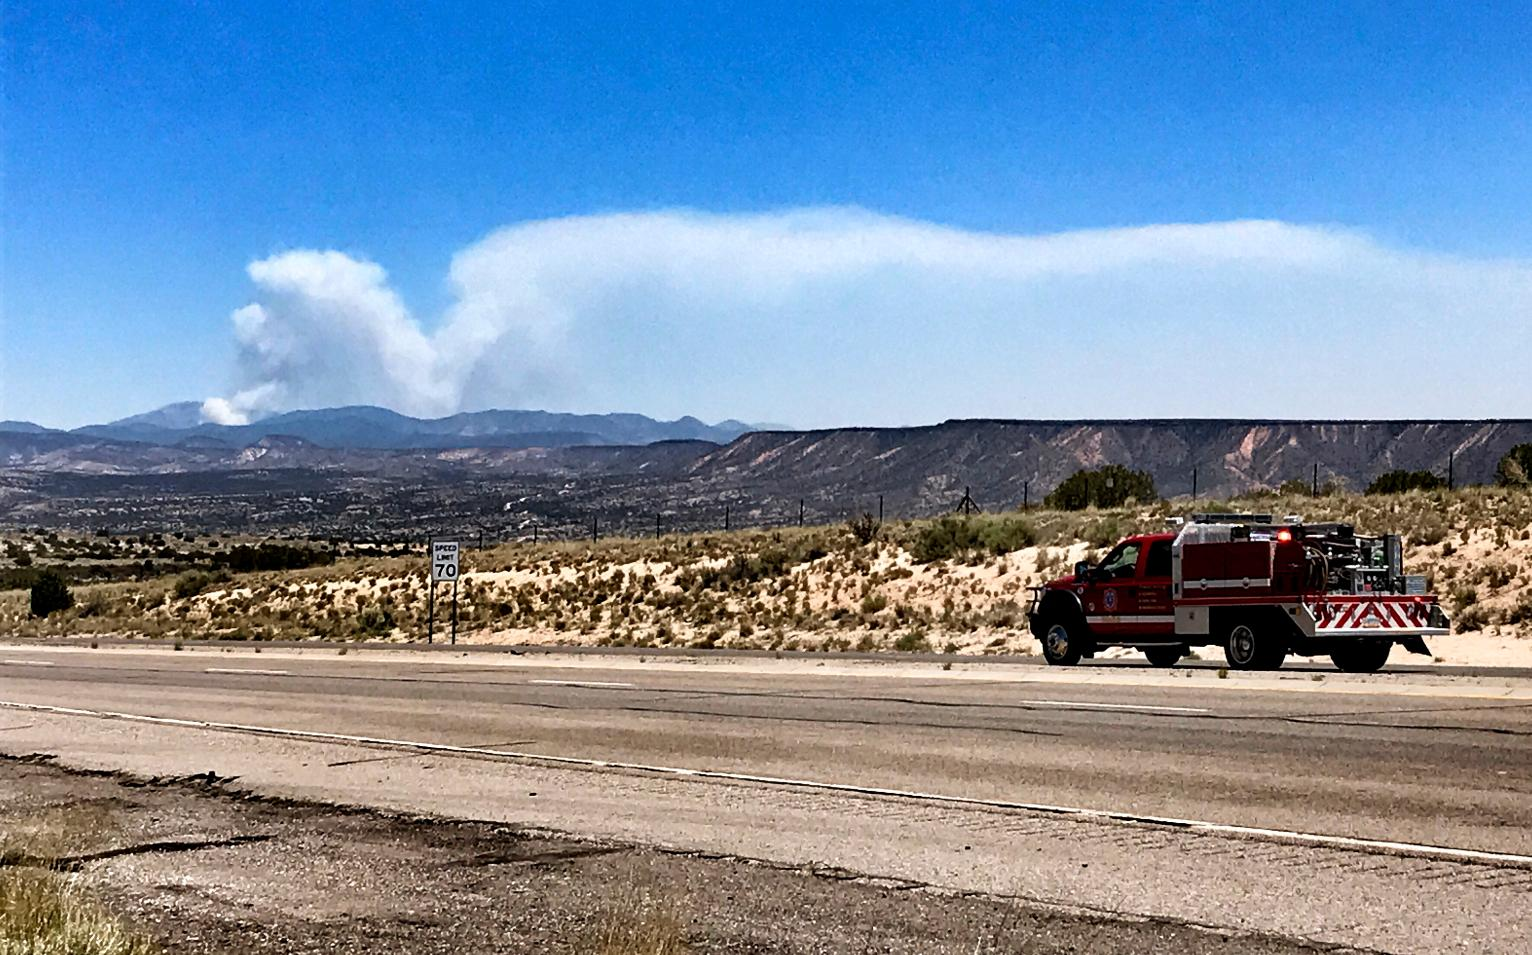 New mexico sandoval county counselor - The Latest As Many As 200 Evacuated Due To New Mexico Fire New Mexico News Us News